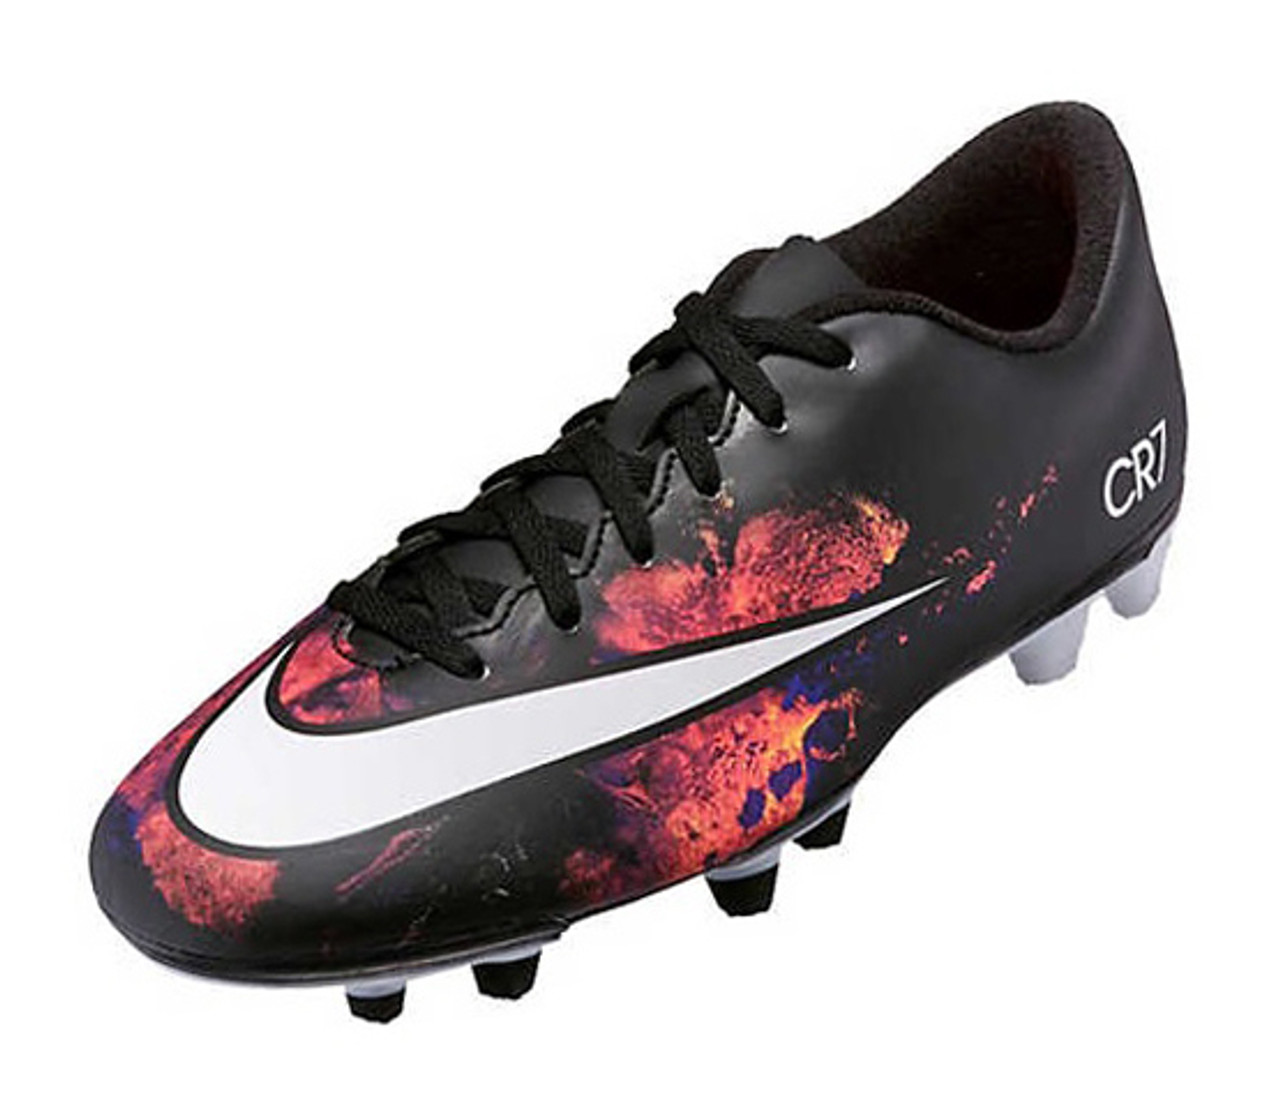 ff1fbc8ddc Nike Mercurial Vortex II CR FG - Black White Total Crimson Vivid Purple